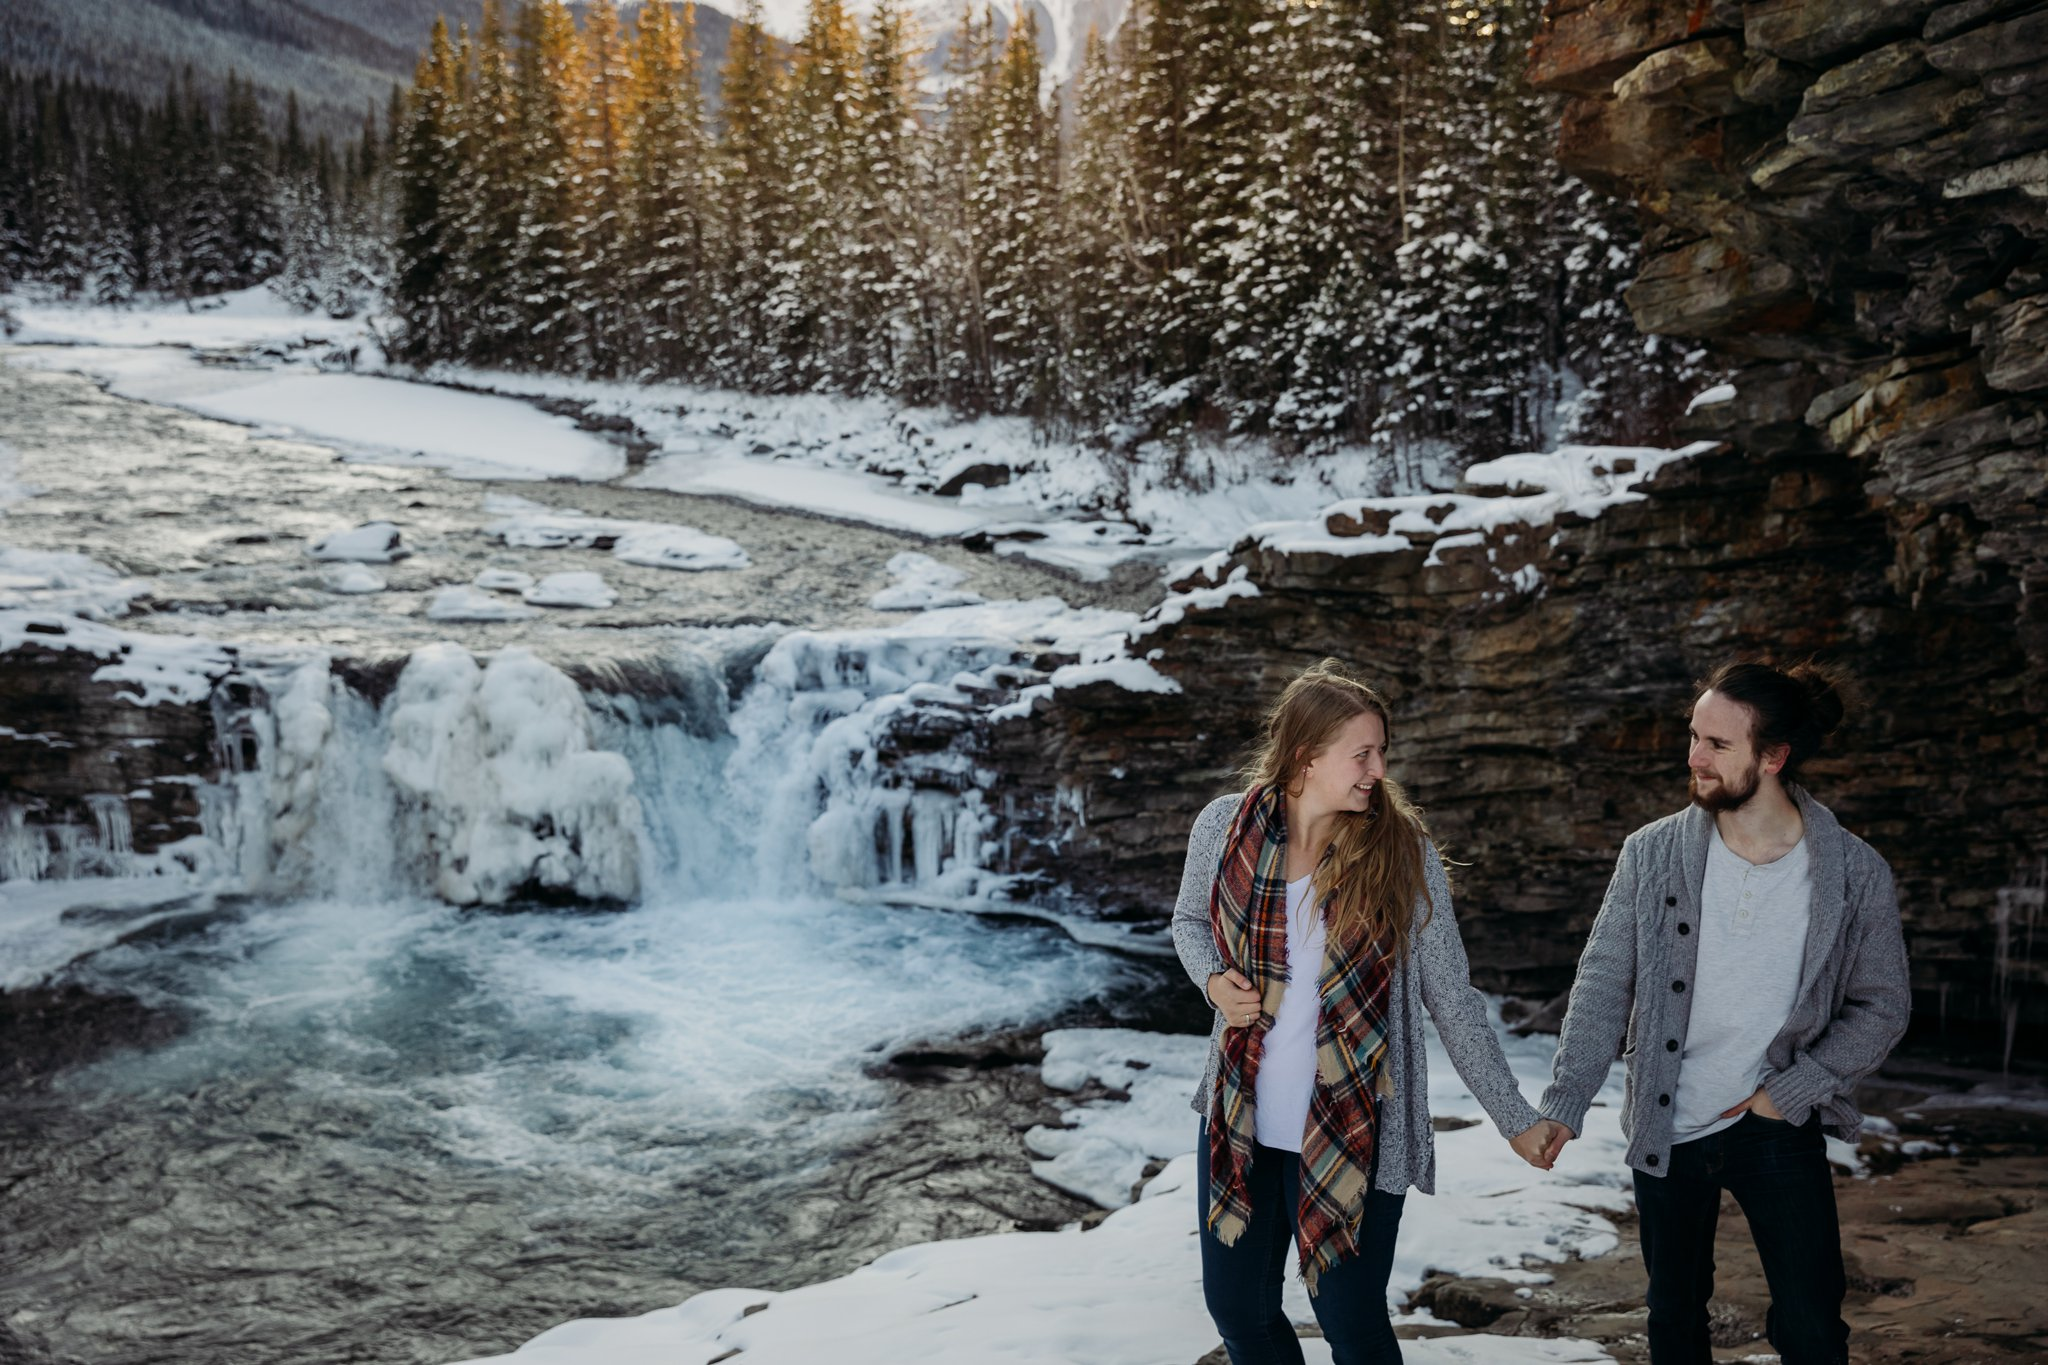 AshleyDaphnePhotography Calgary Photographer Wedding Engagement Sheep River Provincial Park Photos Kananskis Rocky Mountain Canmore Photographer_0056.jpg